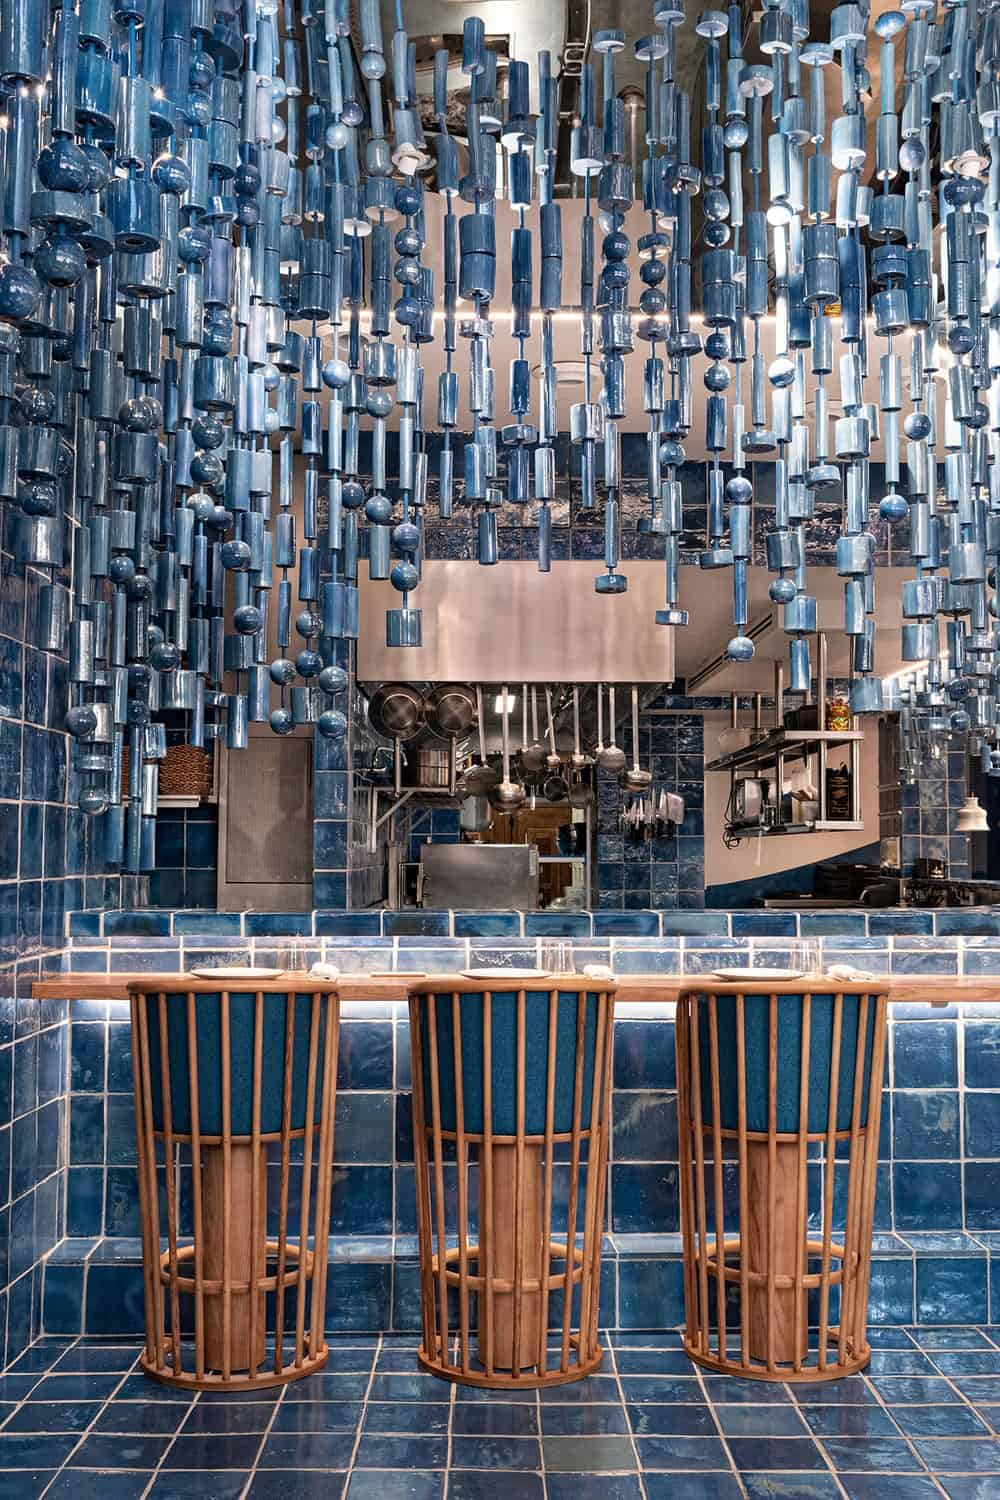 This is a close look at the bar that has stools, tiles and hanging decorations that matches in tone.